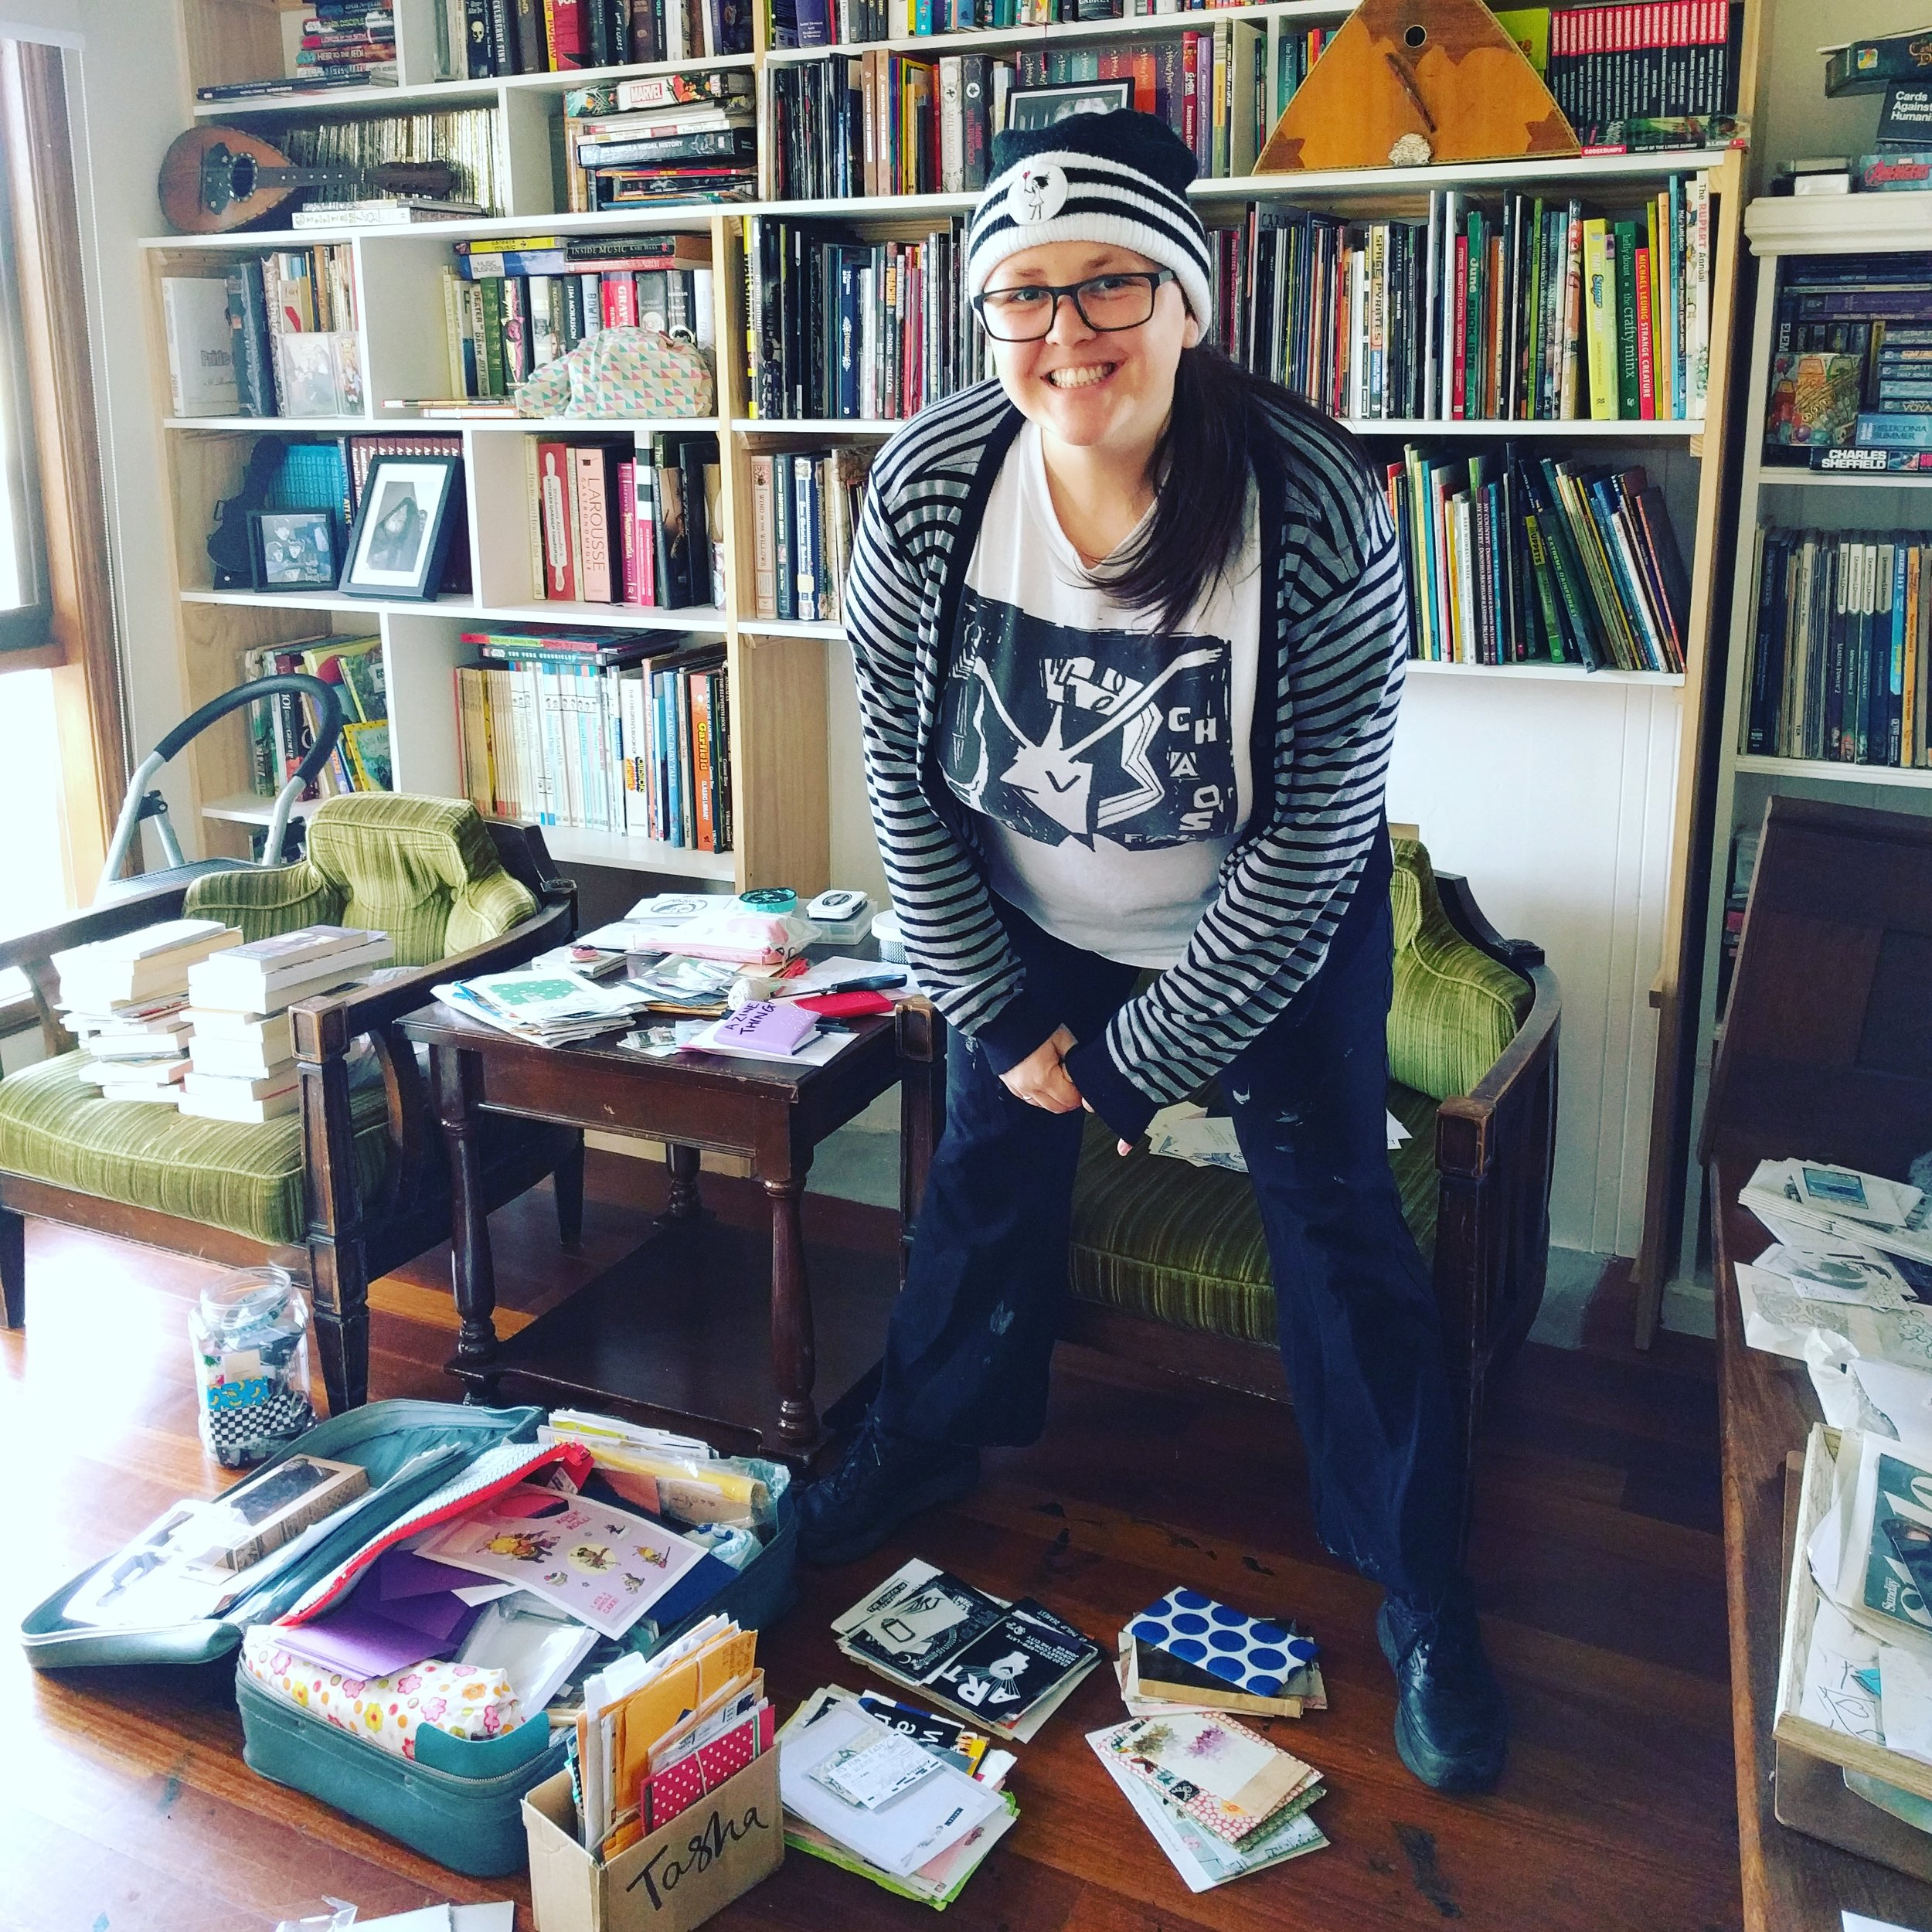 Tasha  is a writer, mess maker, zinester, diy enthusiast and a workshop facilitator for  A Zine Thing . She will be selling some of her zines and hoping to chat with you about AZT workshops and other creative things.  Find out more here.